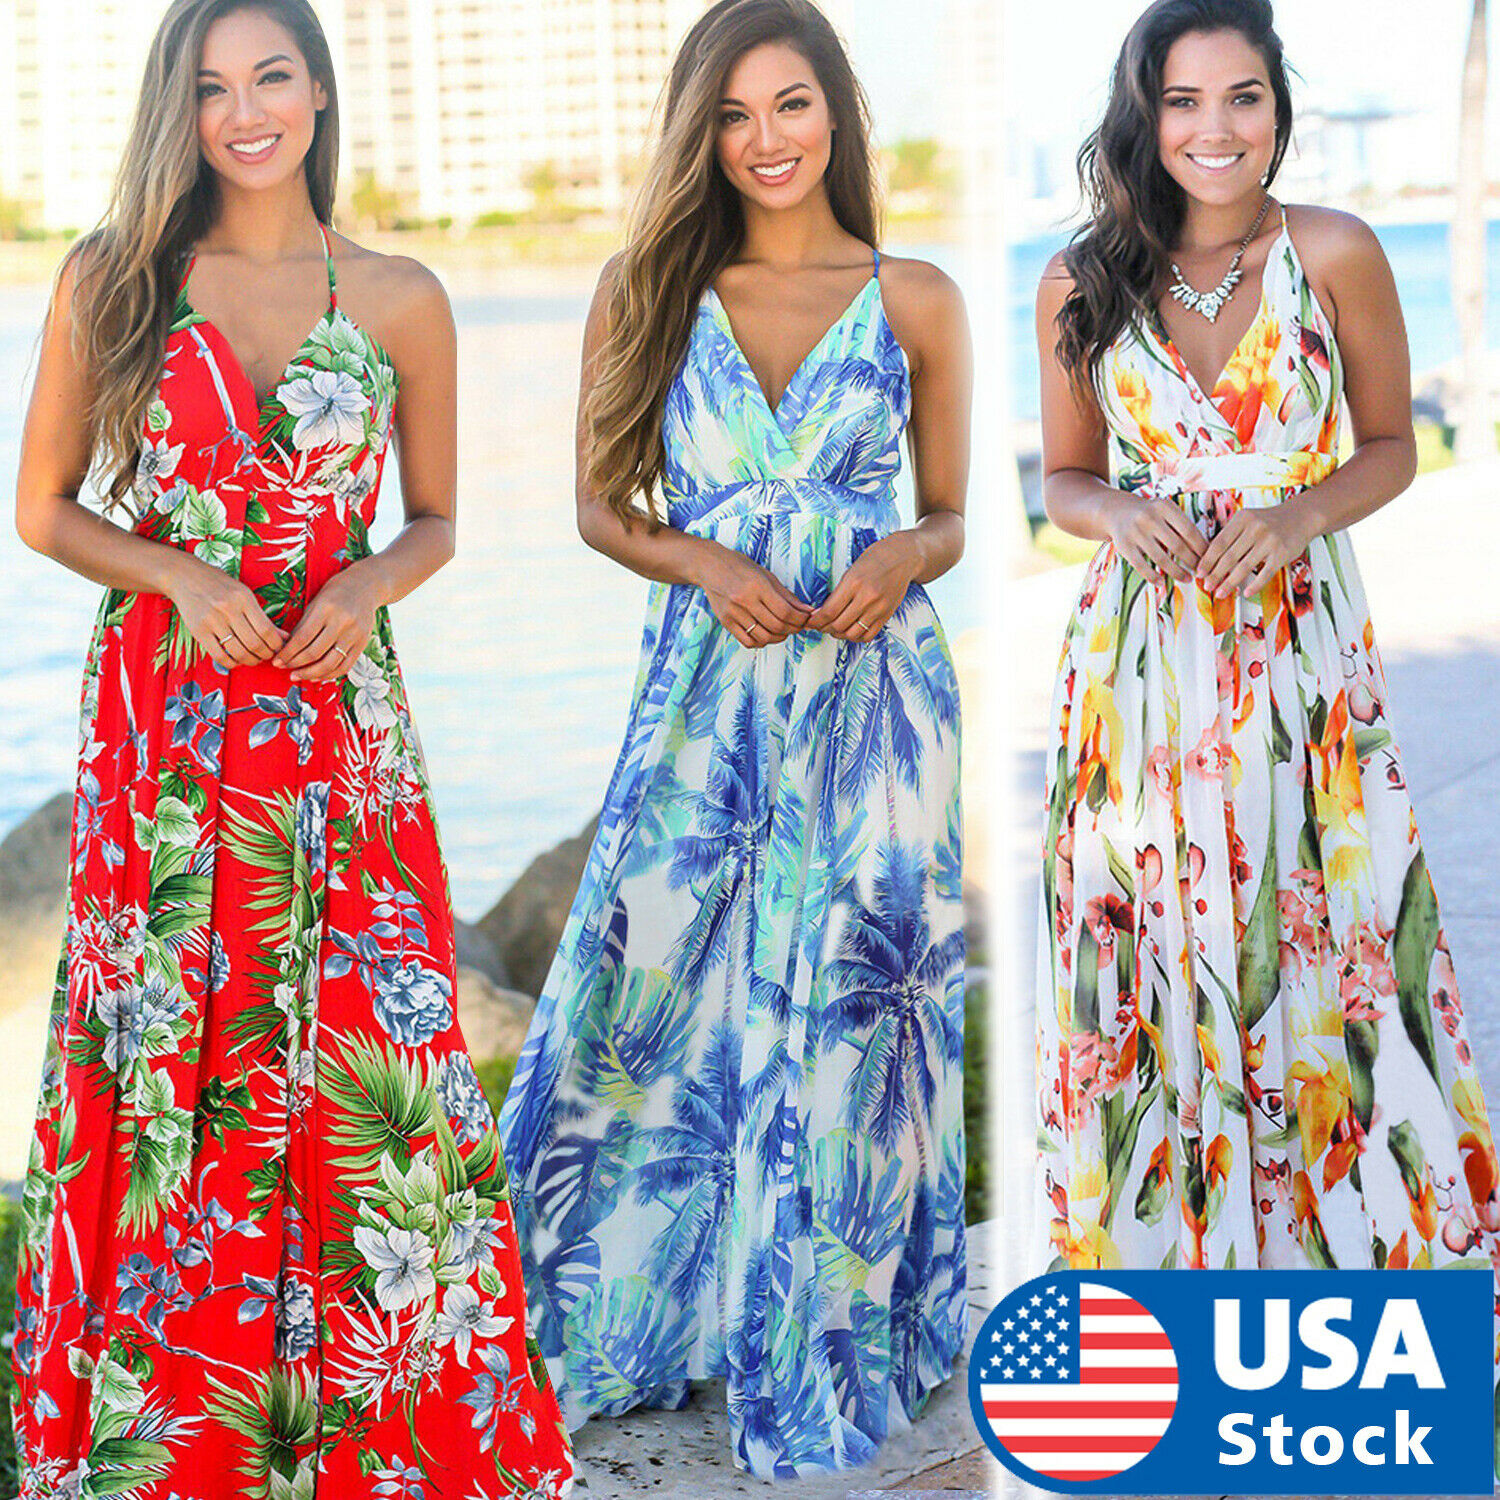 Women Floral Sexy Backless Evening Party Beach Long Maxi Dresses Boho Sundress Clothing, Shoes & Accessories